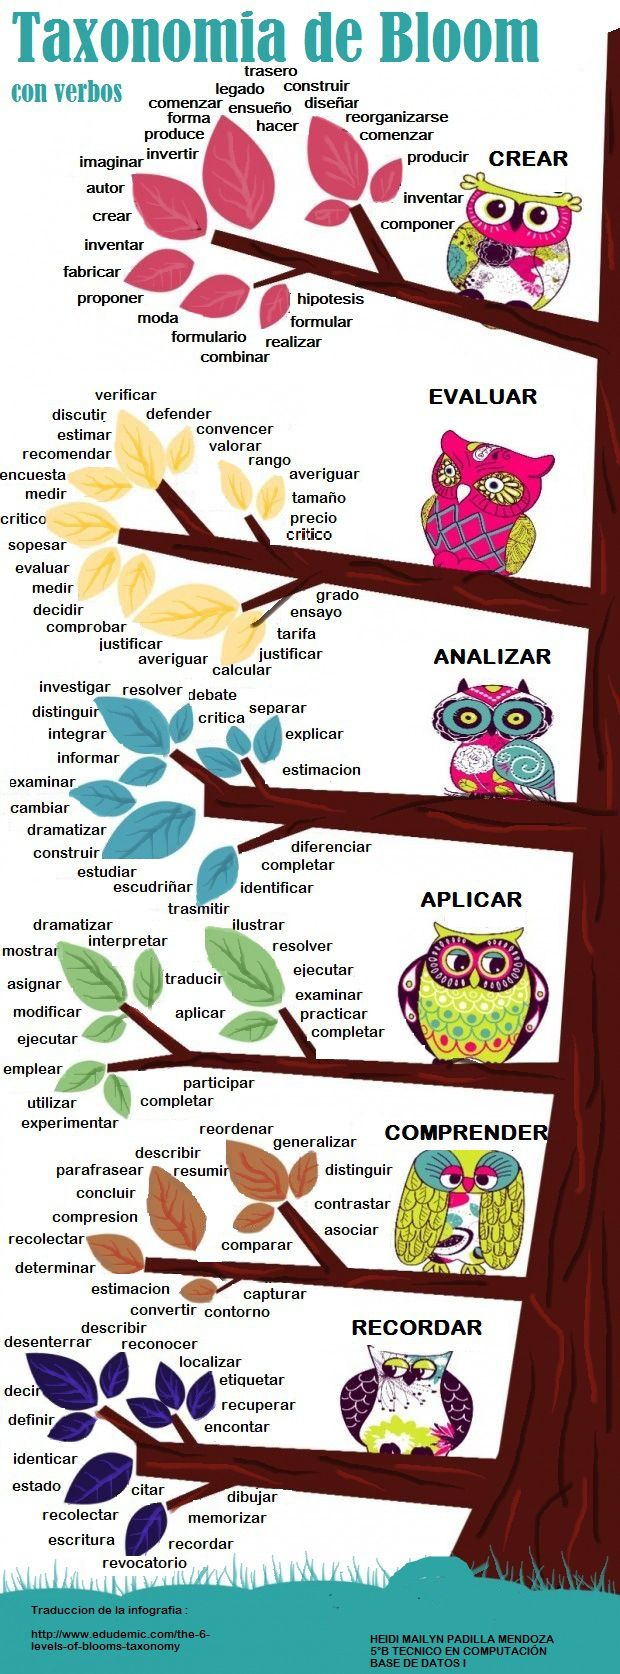 TAXONOMÍAS DE BLOOM CON VERBOS #INFOGRAFIA #INFOGRAPHIC #EDUCATION